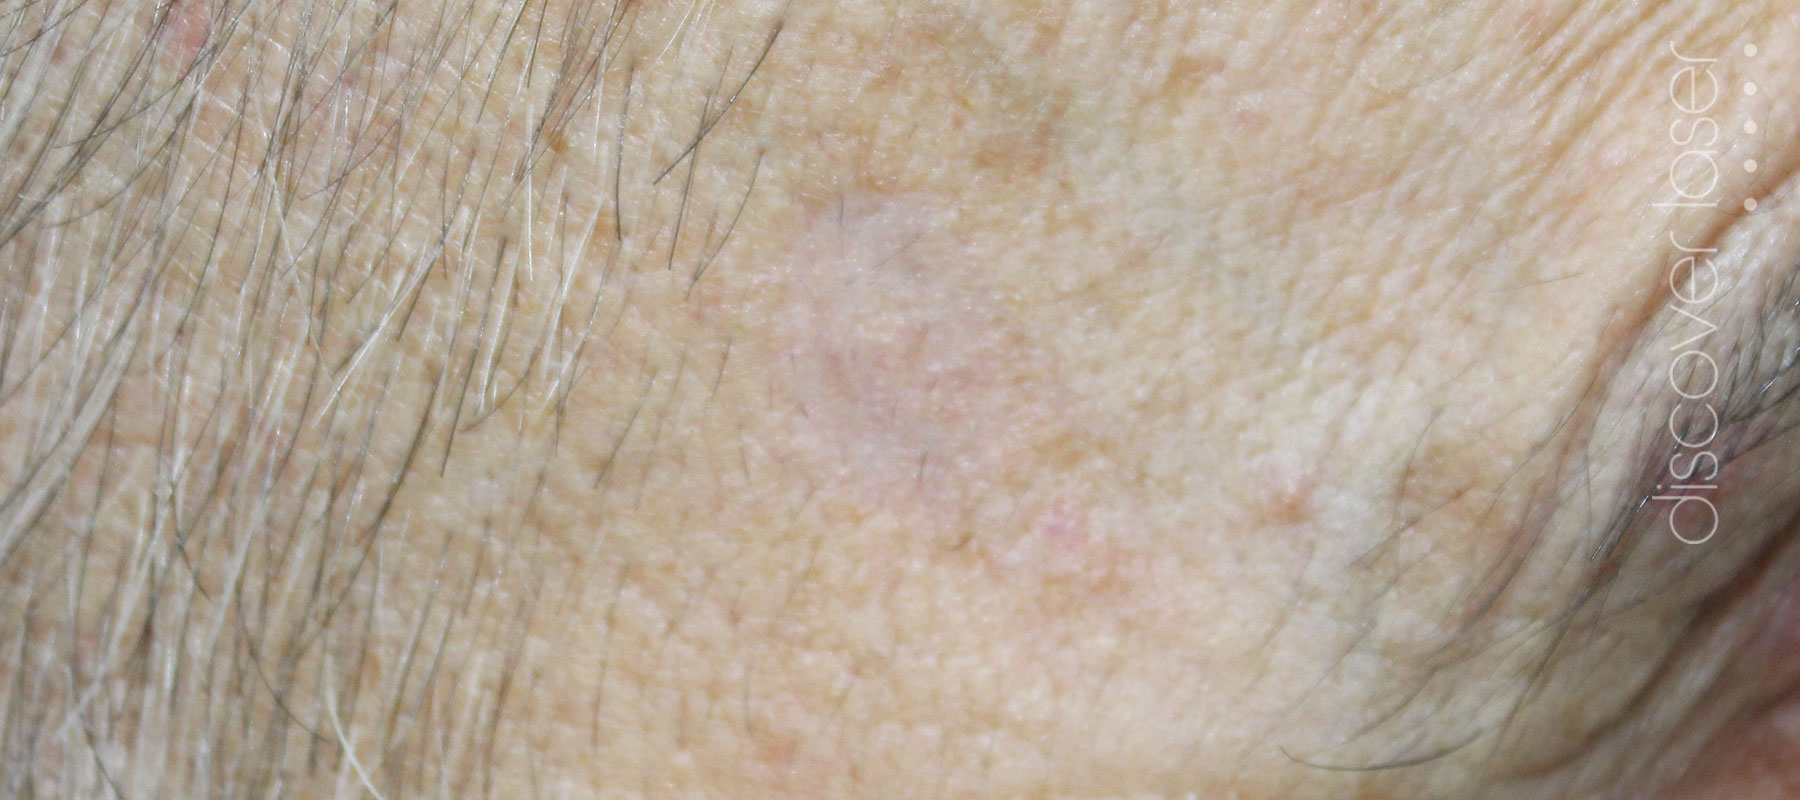 Seborrhoeic keratoses after treatment